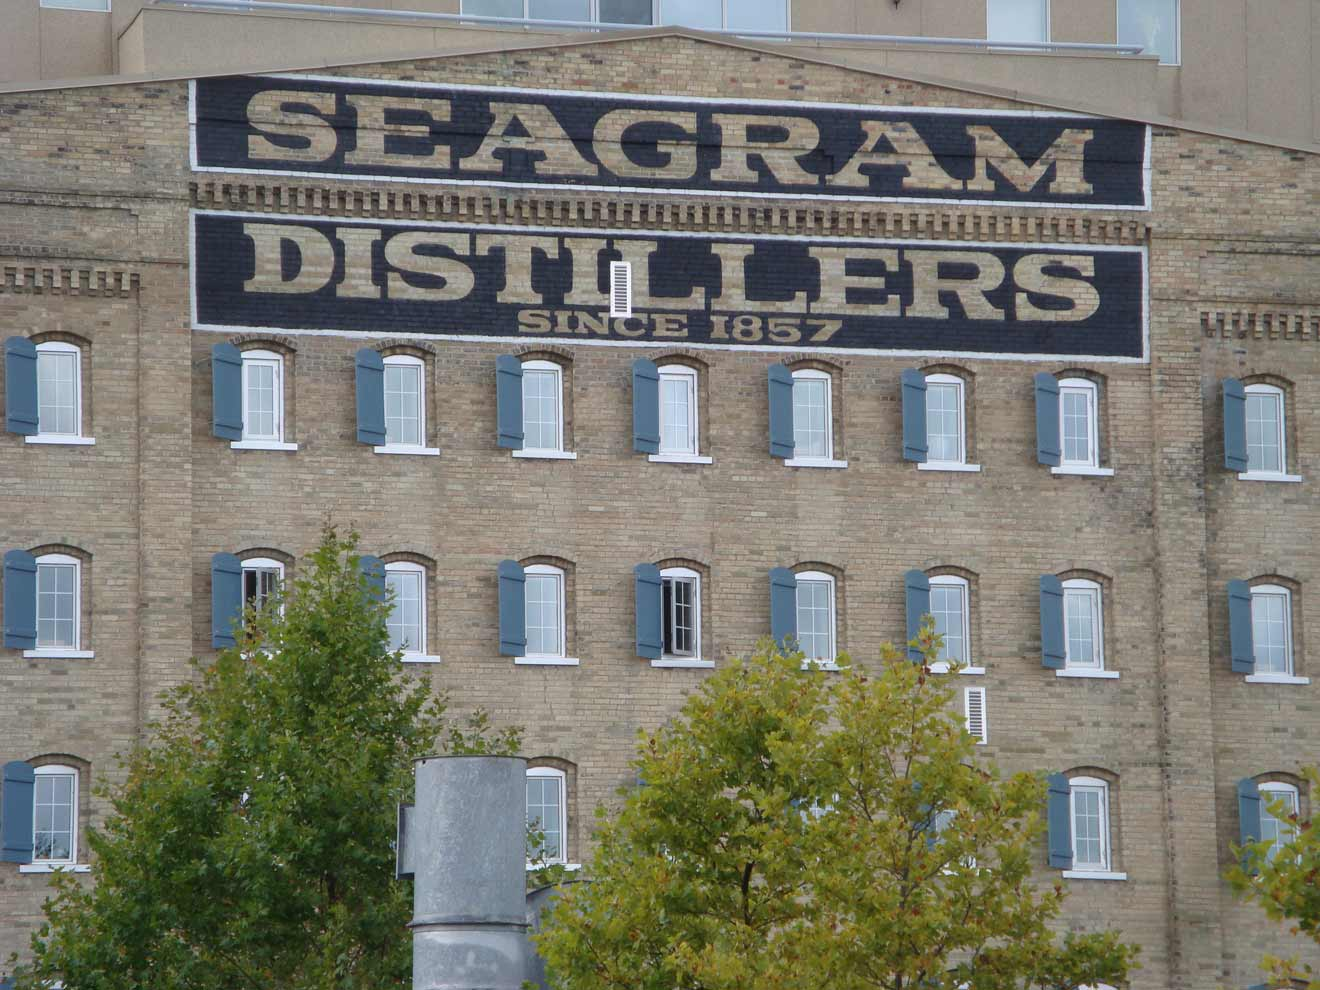 6a JE Seagram, one of Canada's first whisky distillers, was an Englishman